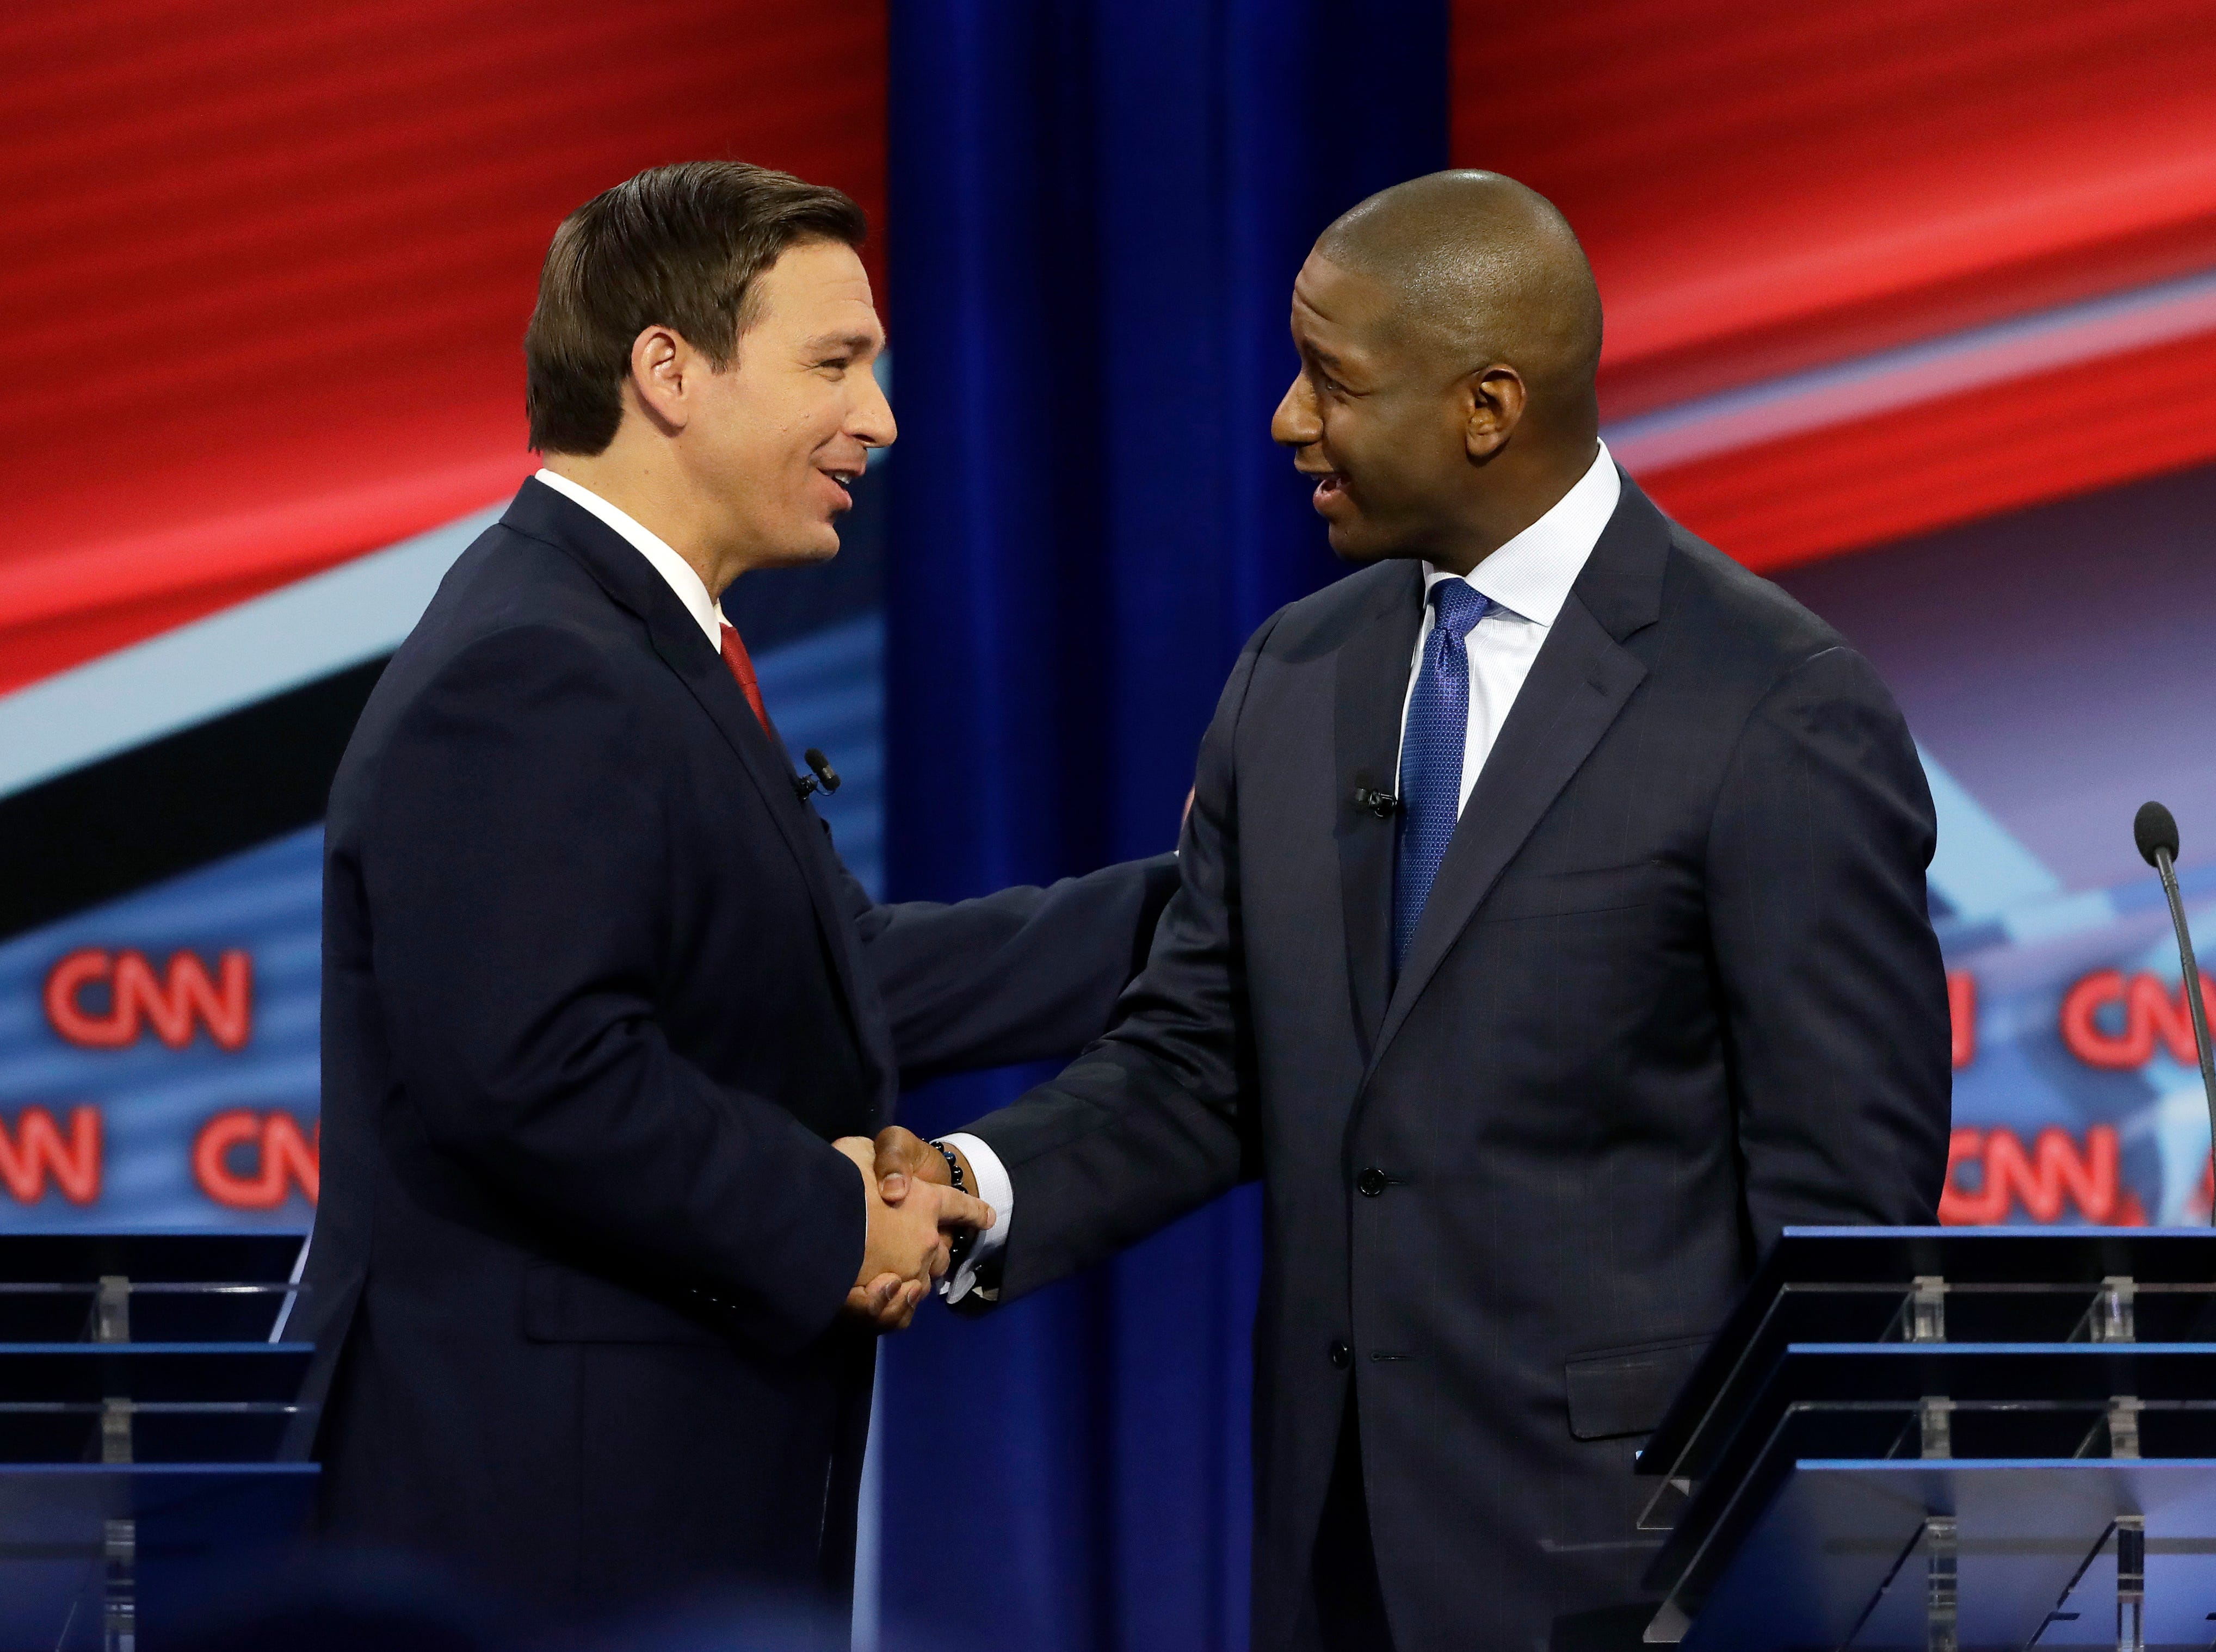 Andrew Gillum vs. Ron DeSantis: A voter guide to the Florida governor's race